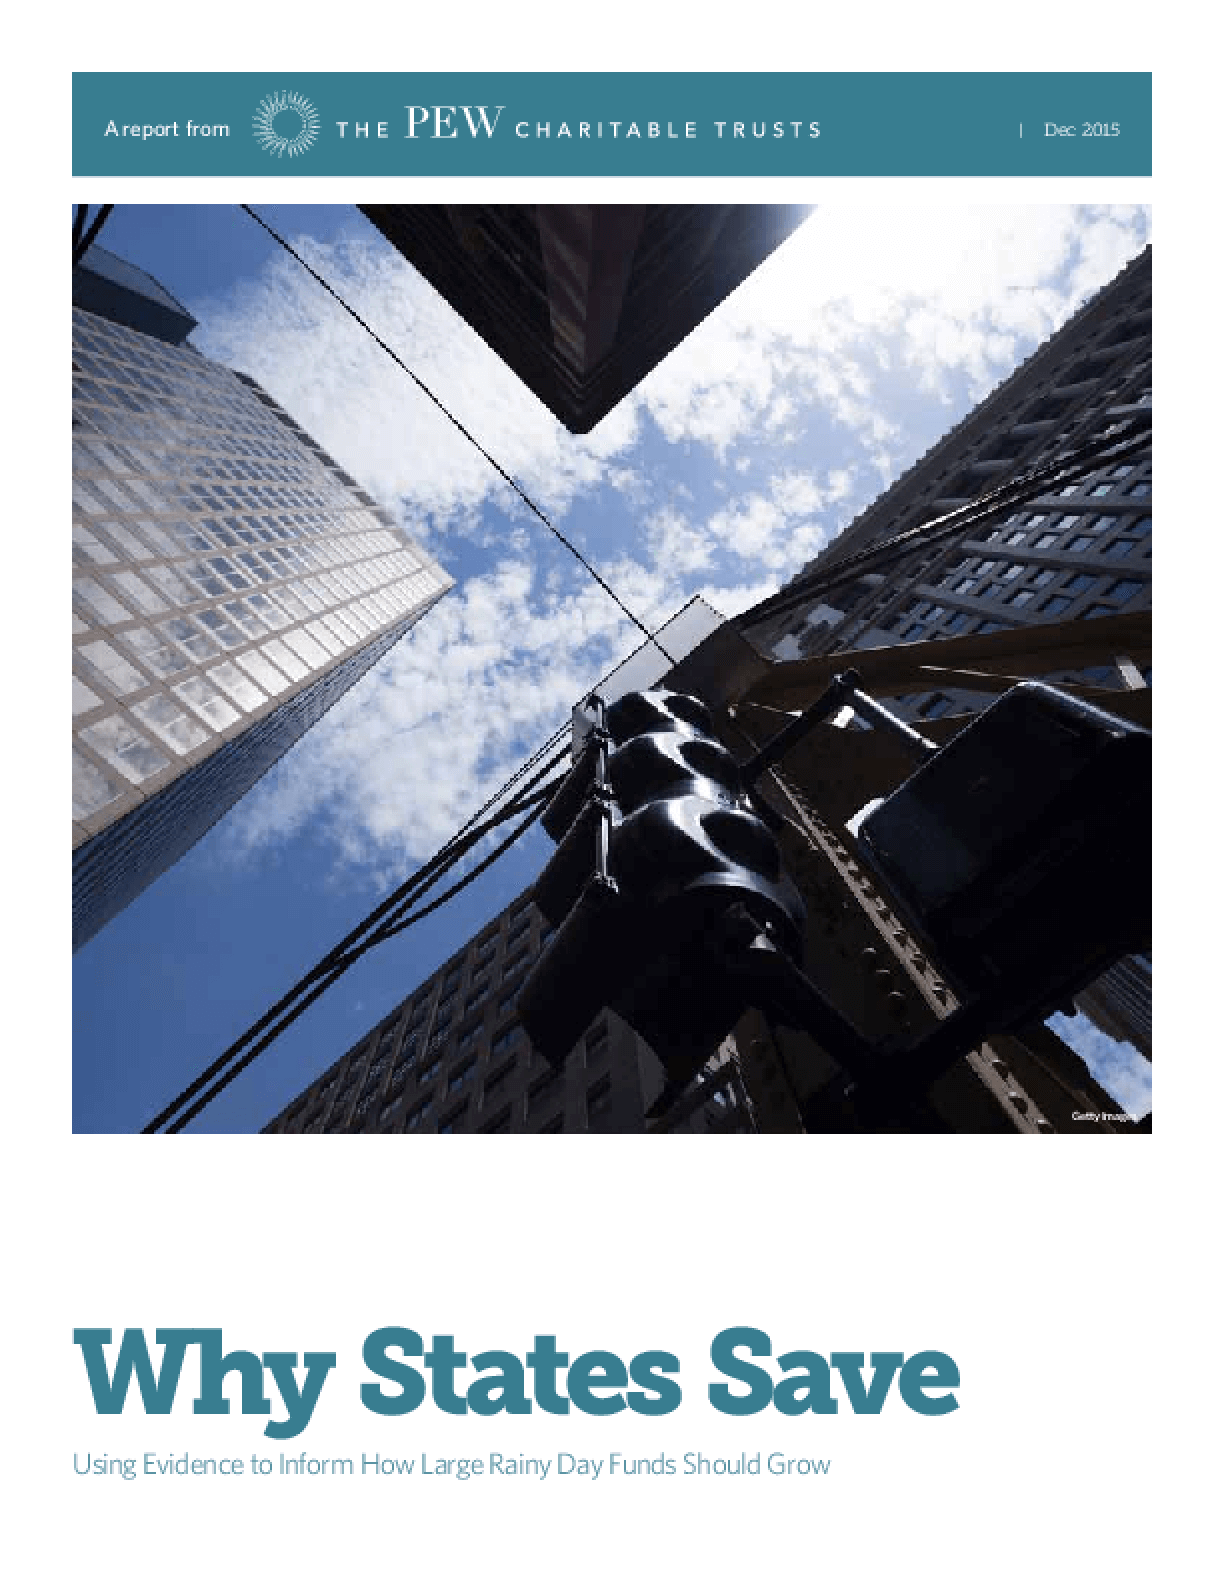 Why States Save: Using Evidence to Inform How Large Rainy Day Funds Should Grow